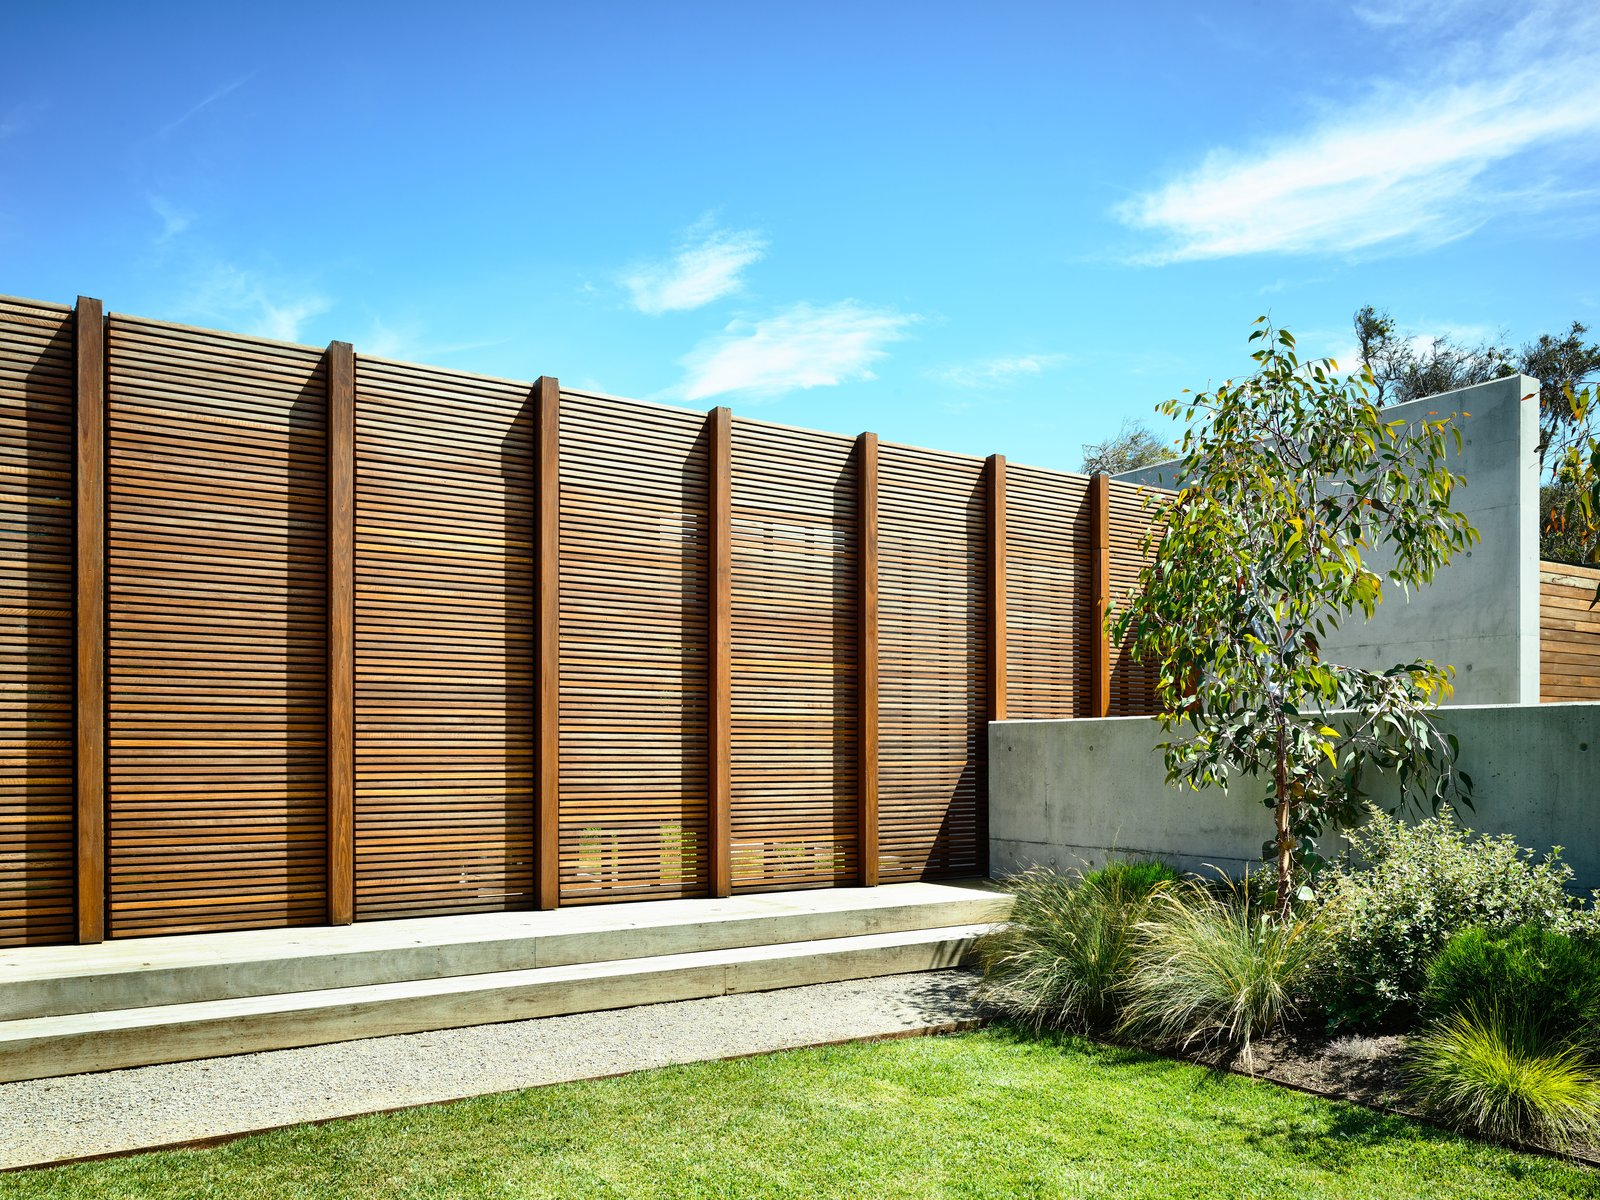 Wood Siding Material, Flat RoofLine, House Building Type, Concrete Siding Material, and Beach House Building Type  DS House, Blairgowrie